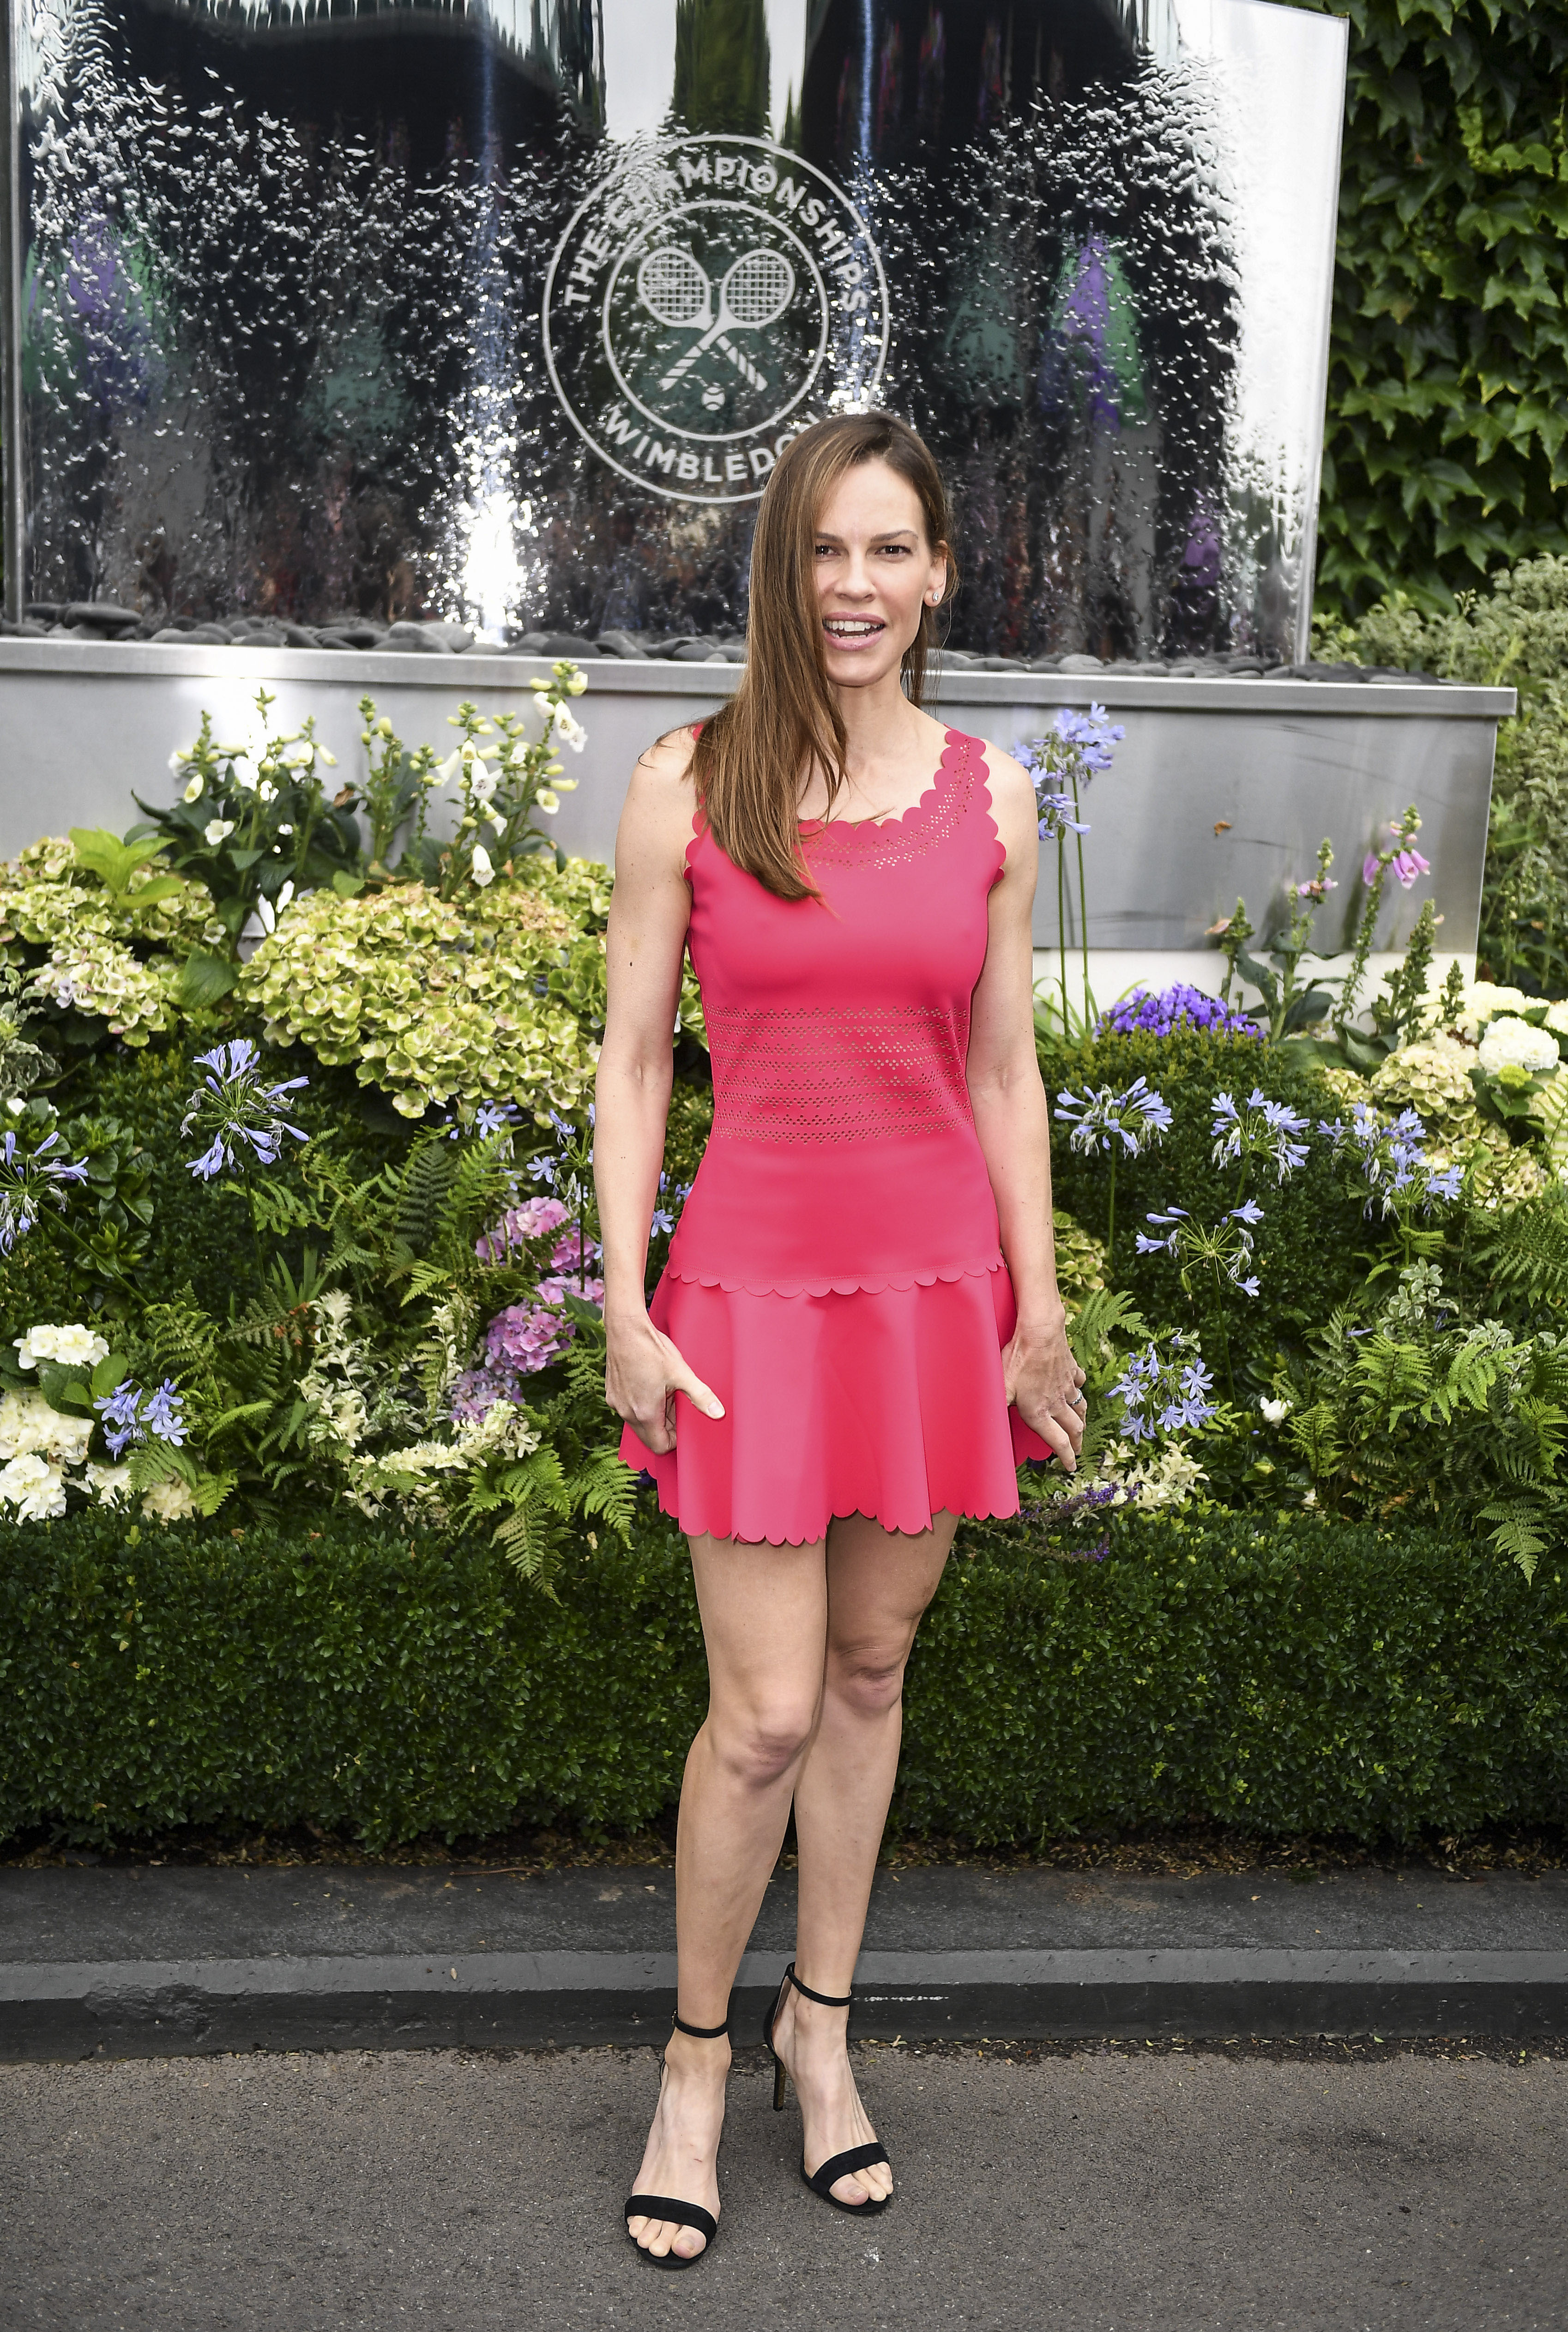 Hilary Swank's Feet